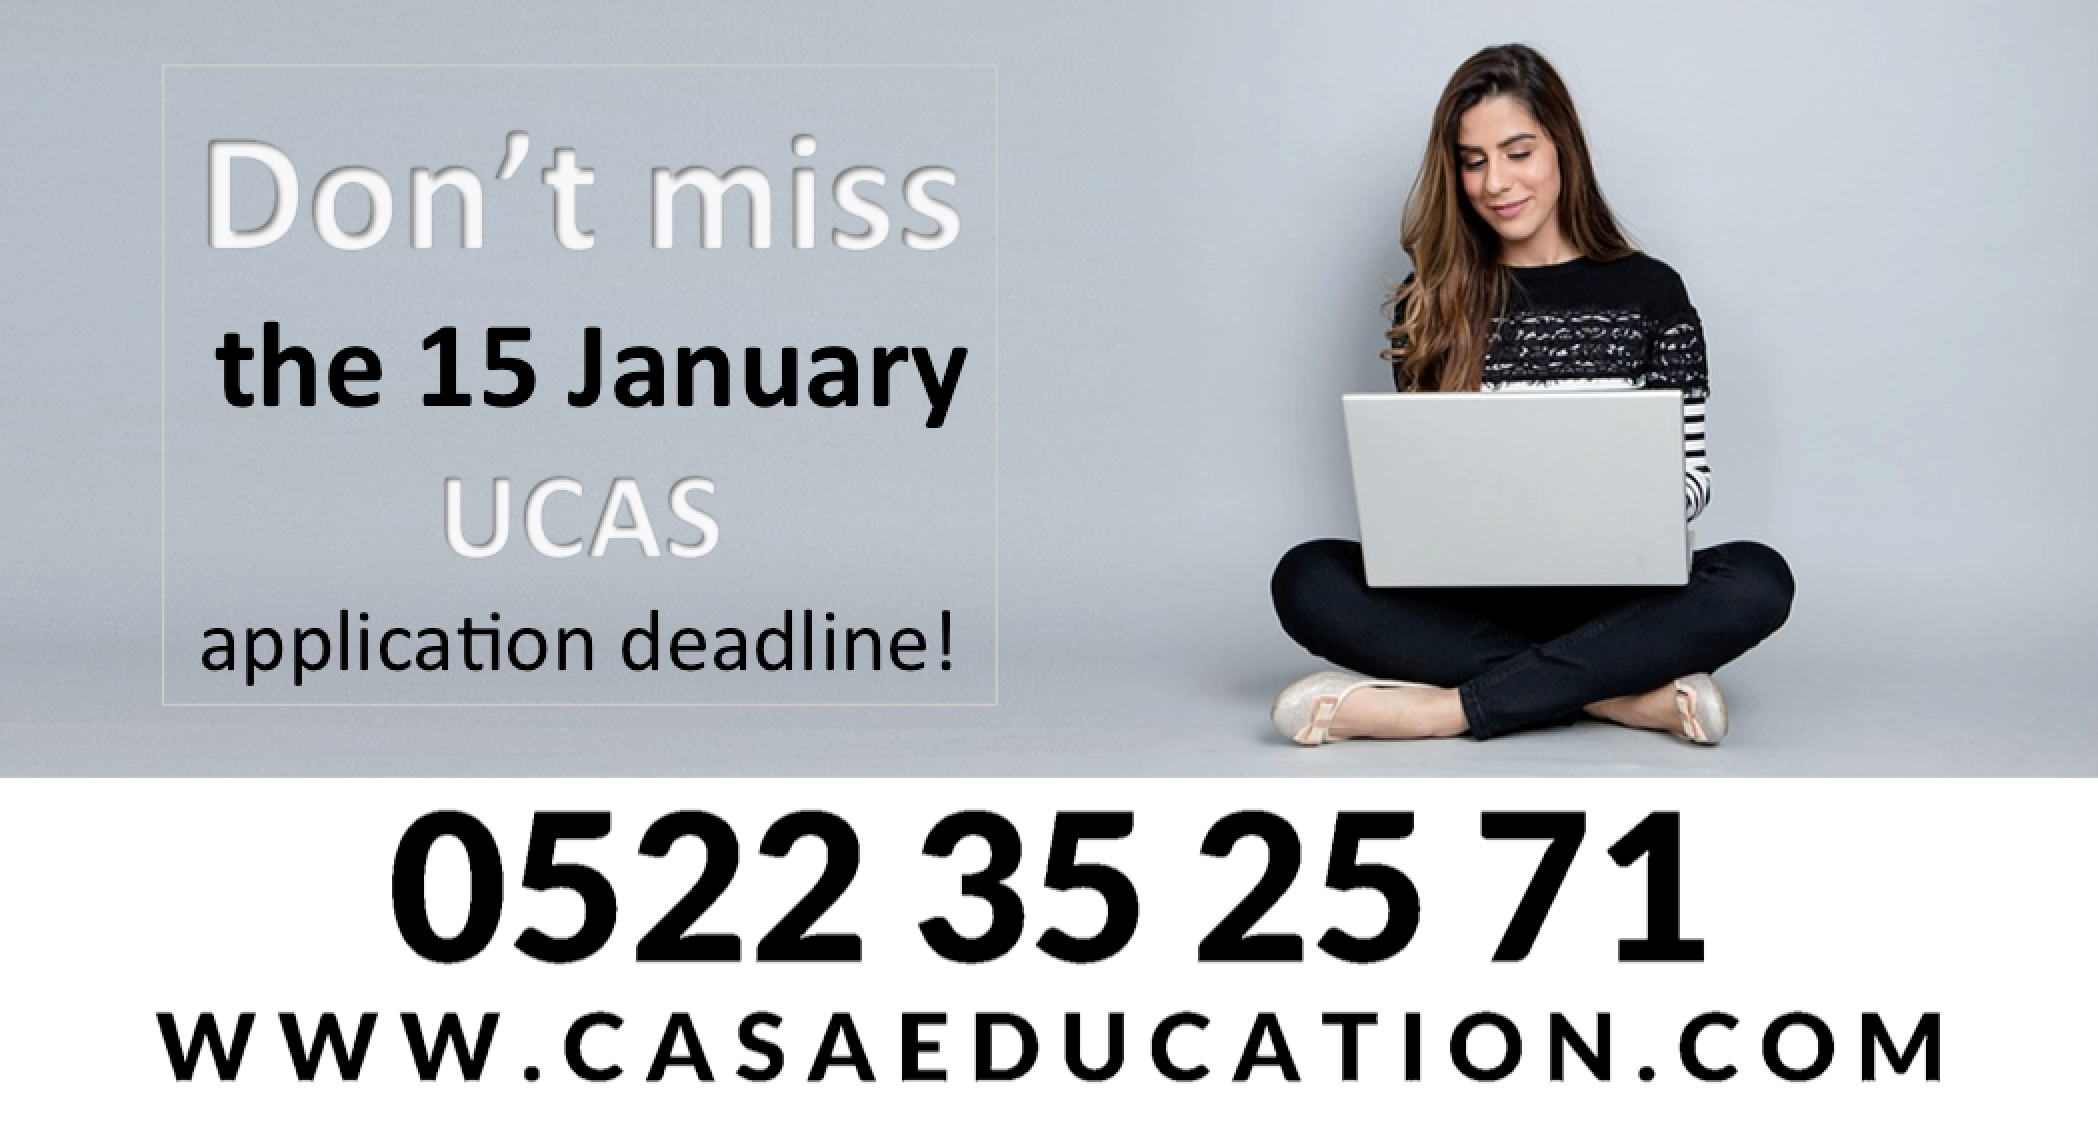 CasaEducation UCAS 2019